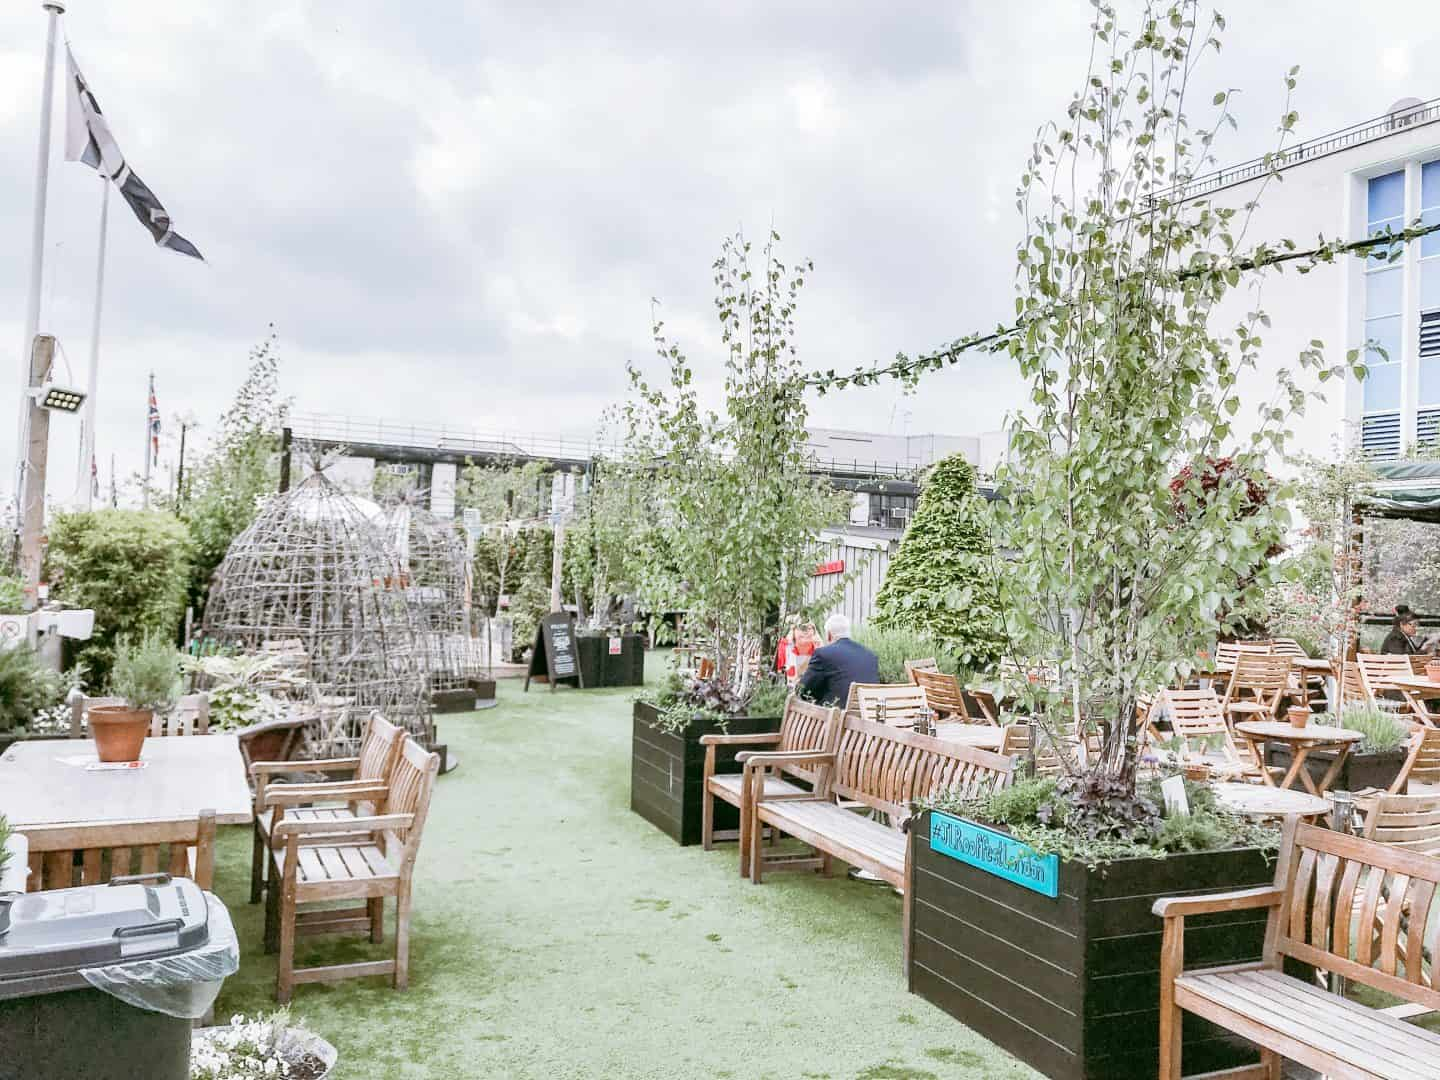 End of summer scenes at John Lewis' Roof Garden London